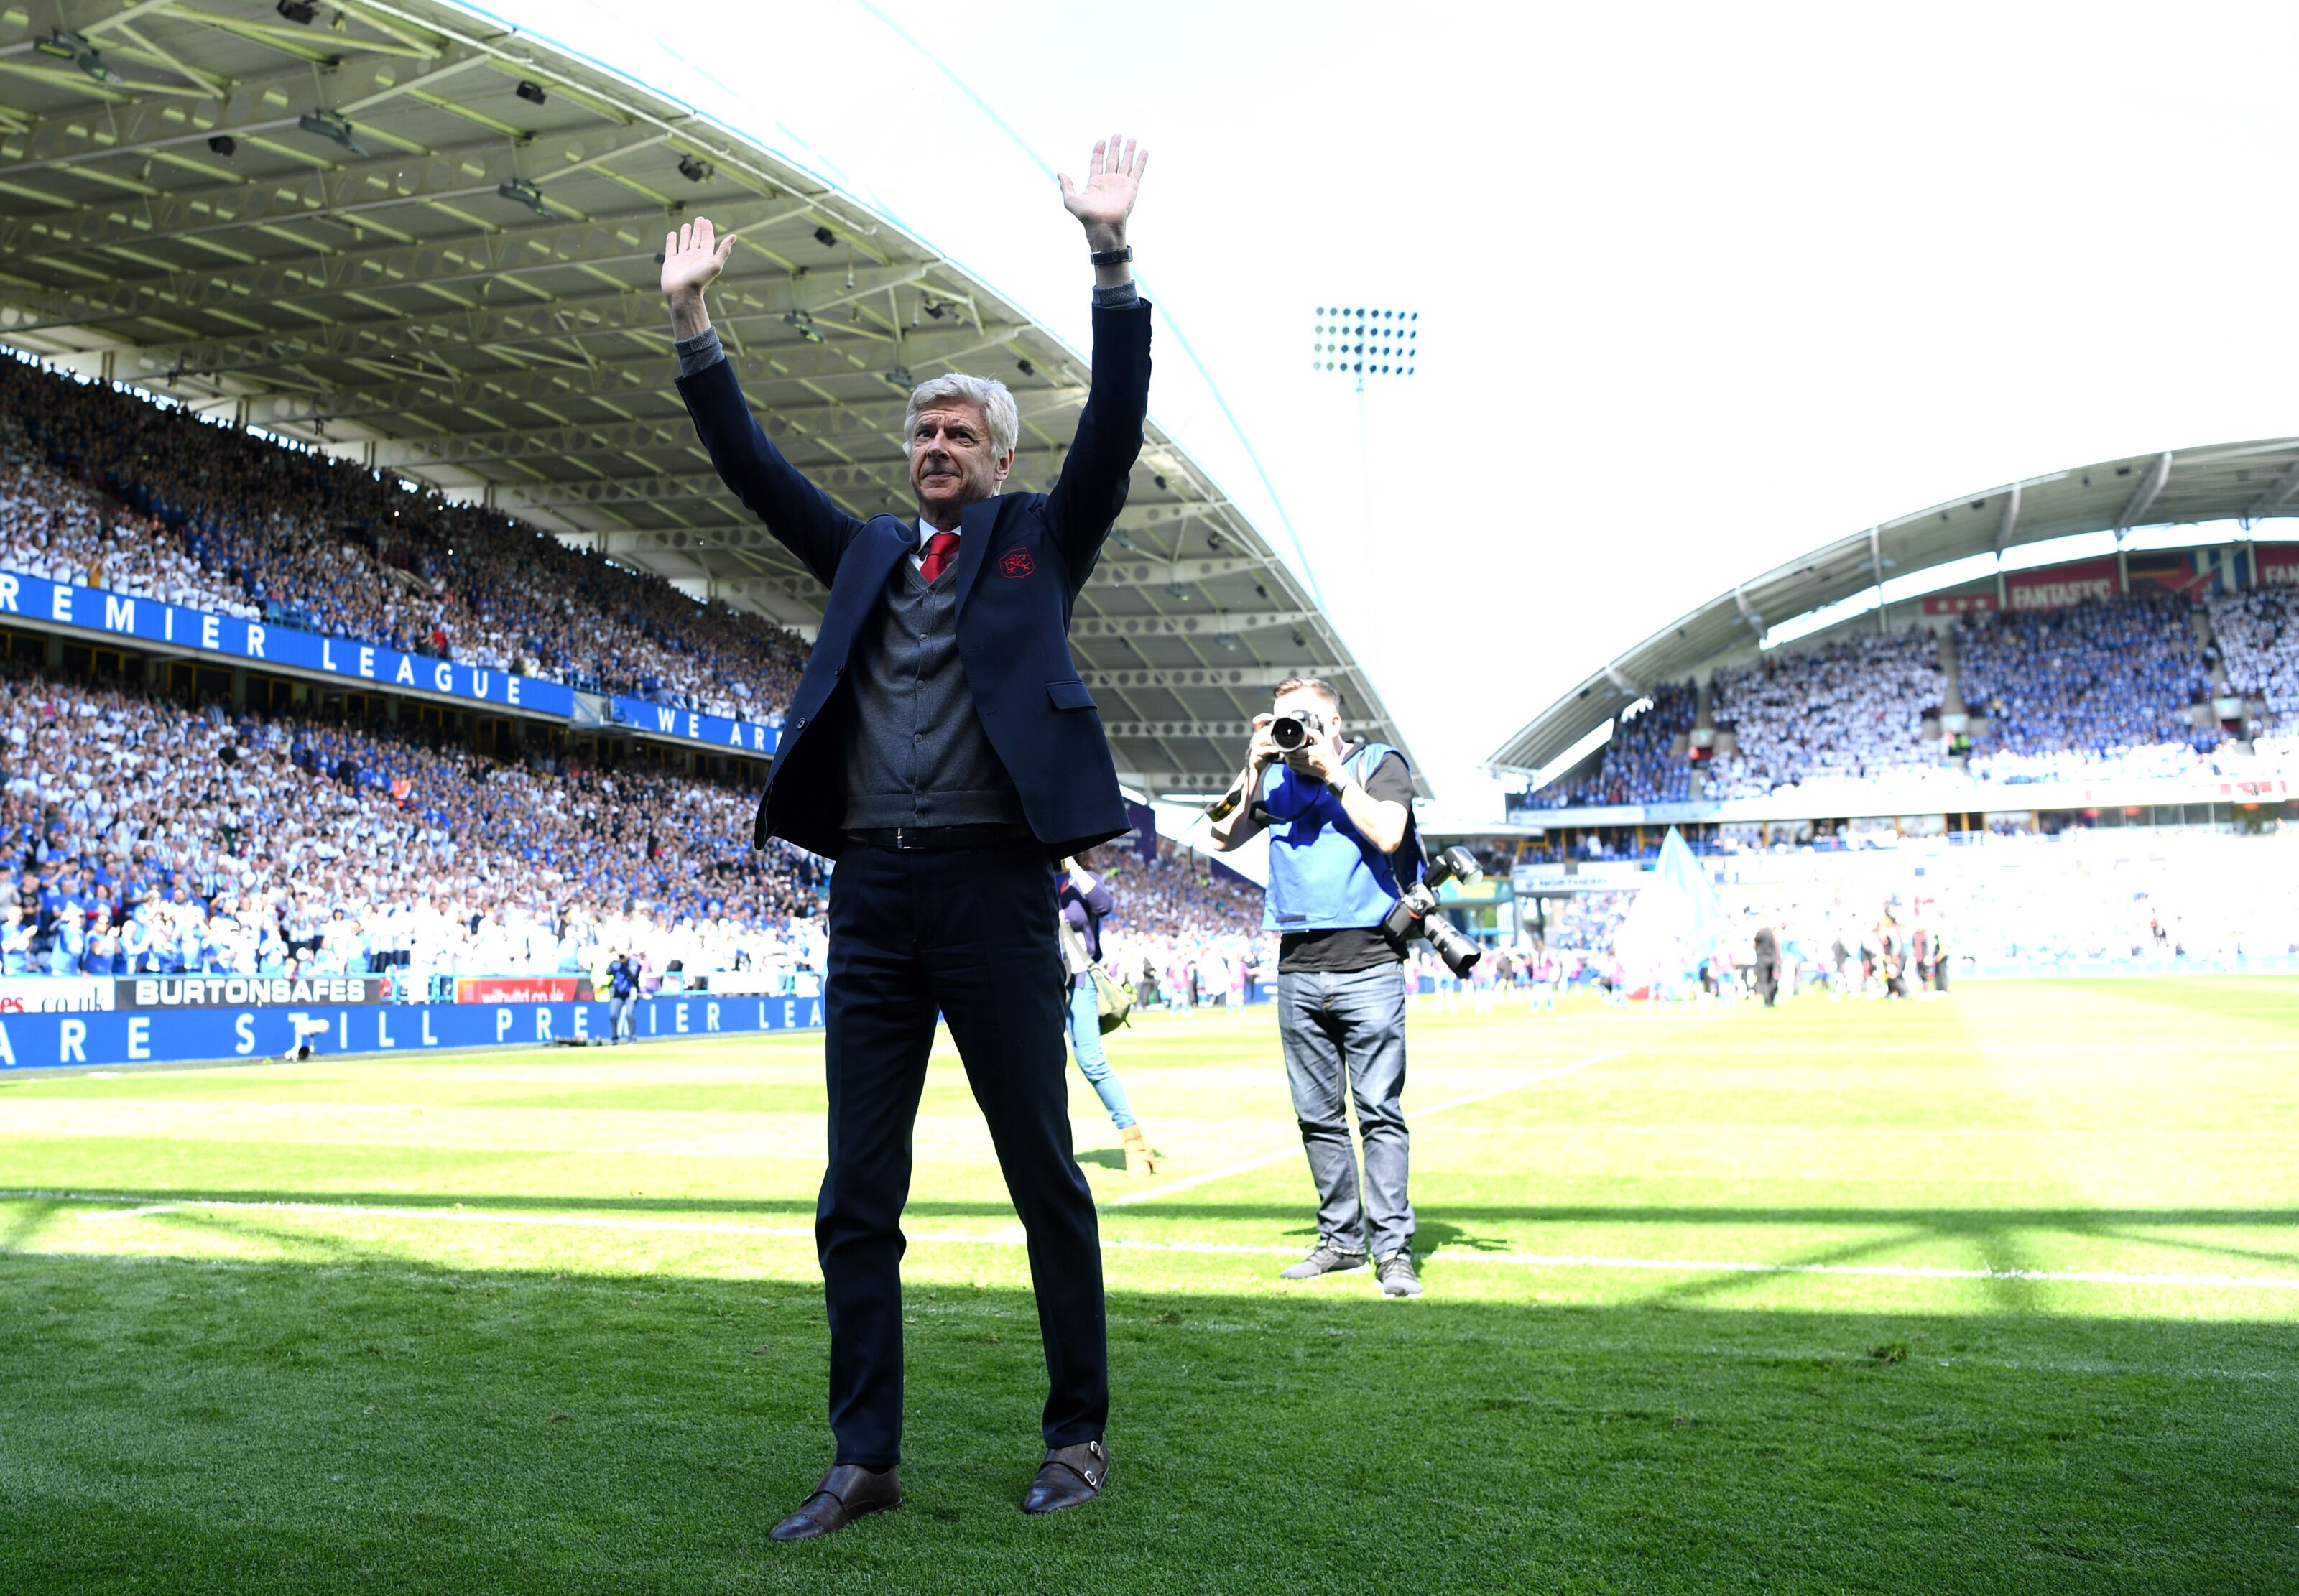 Arsenal Vs Huddersfield: Arsenal Vs Huddersfield Town: Highlights And Analysis